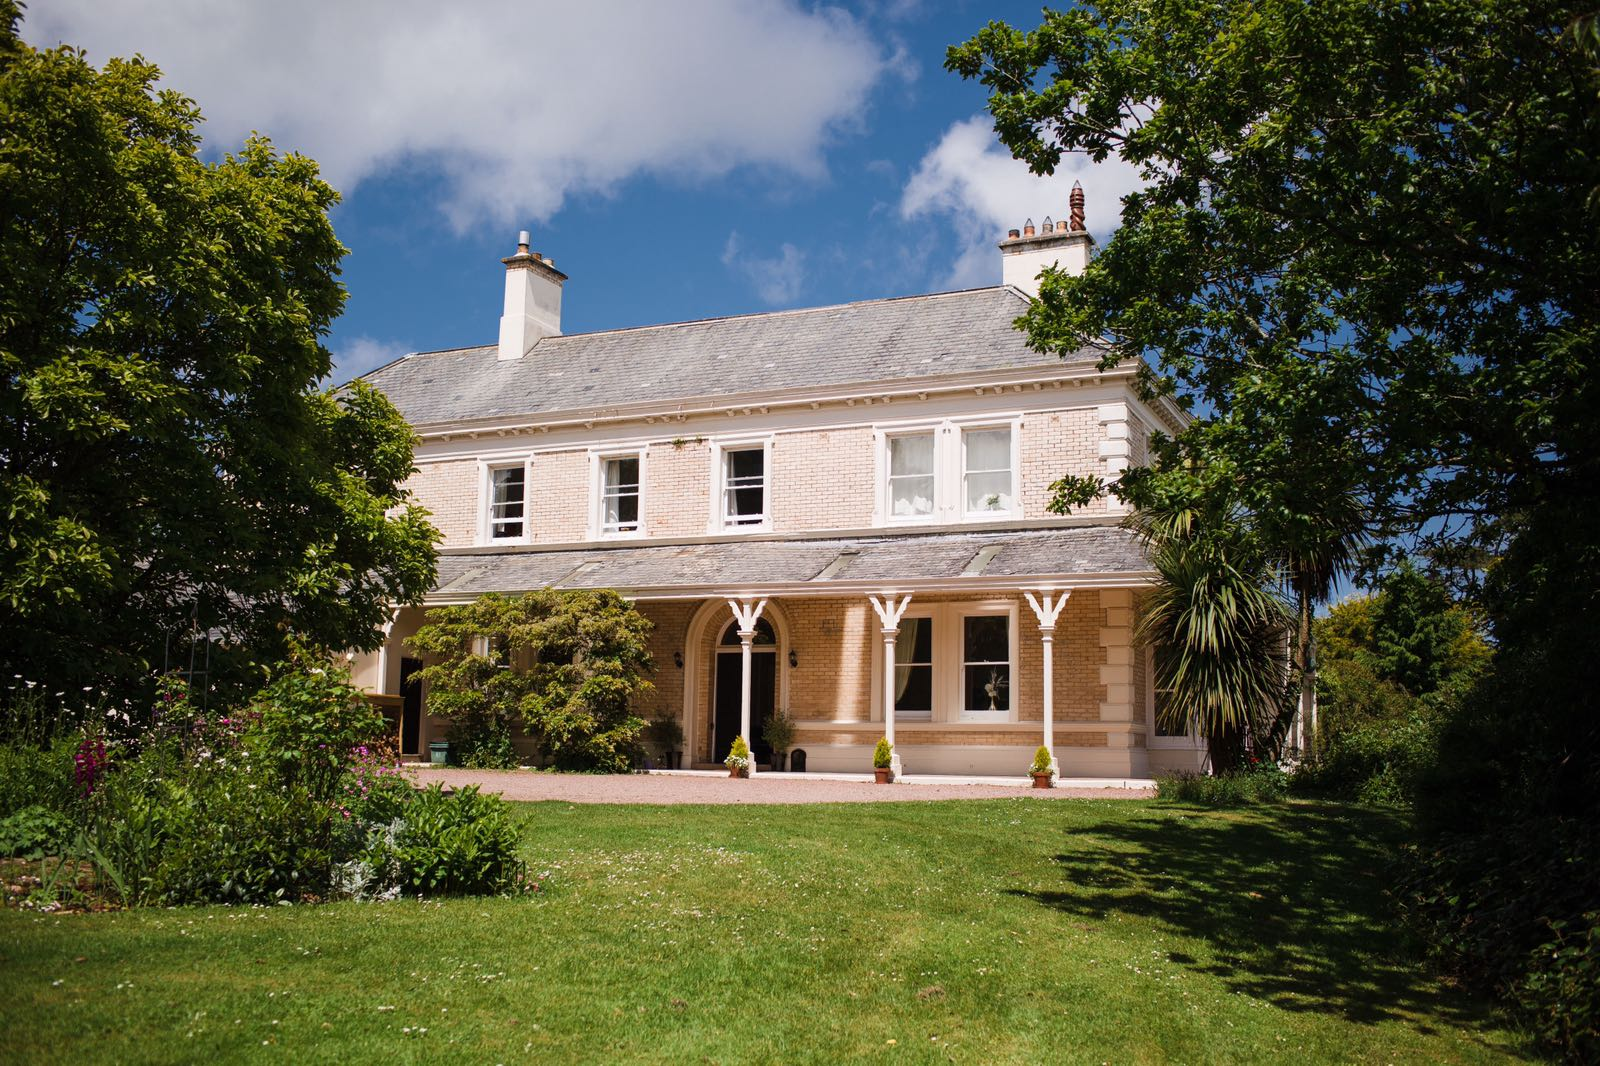 Holiday Cottages Bideford, North Devon